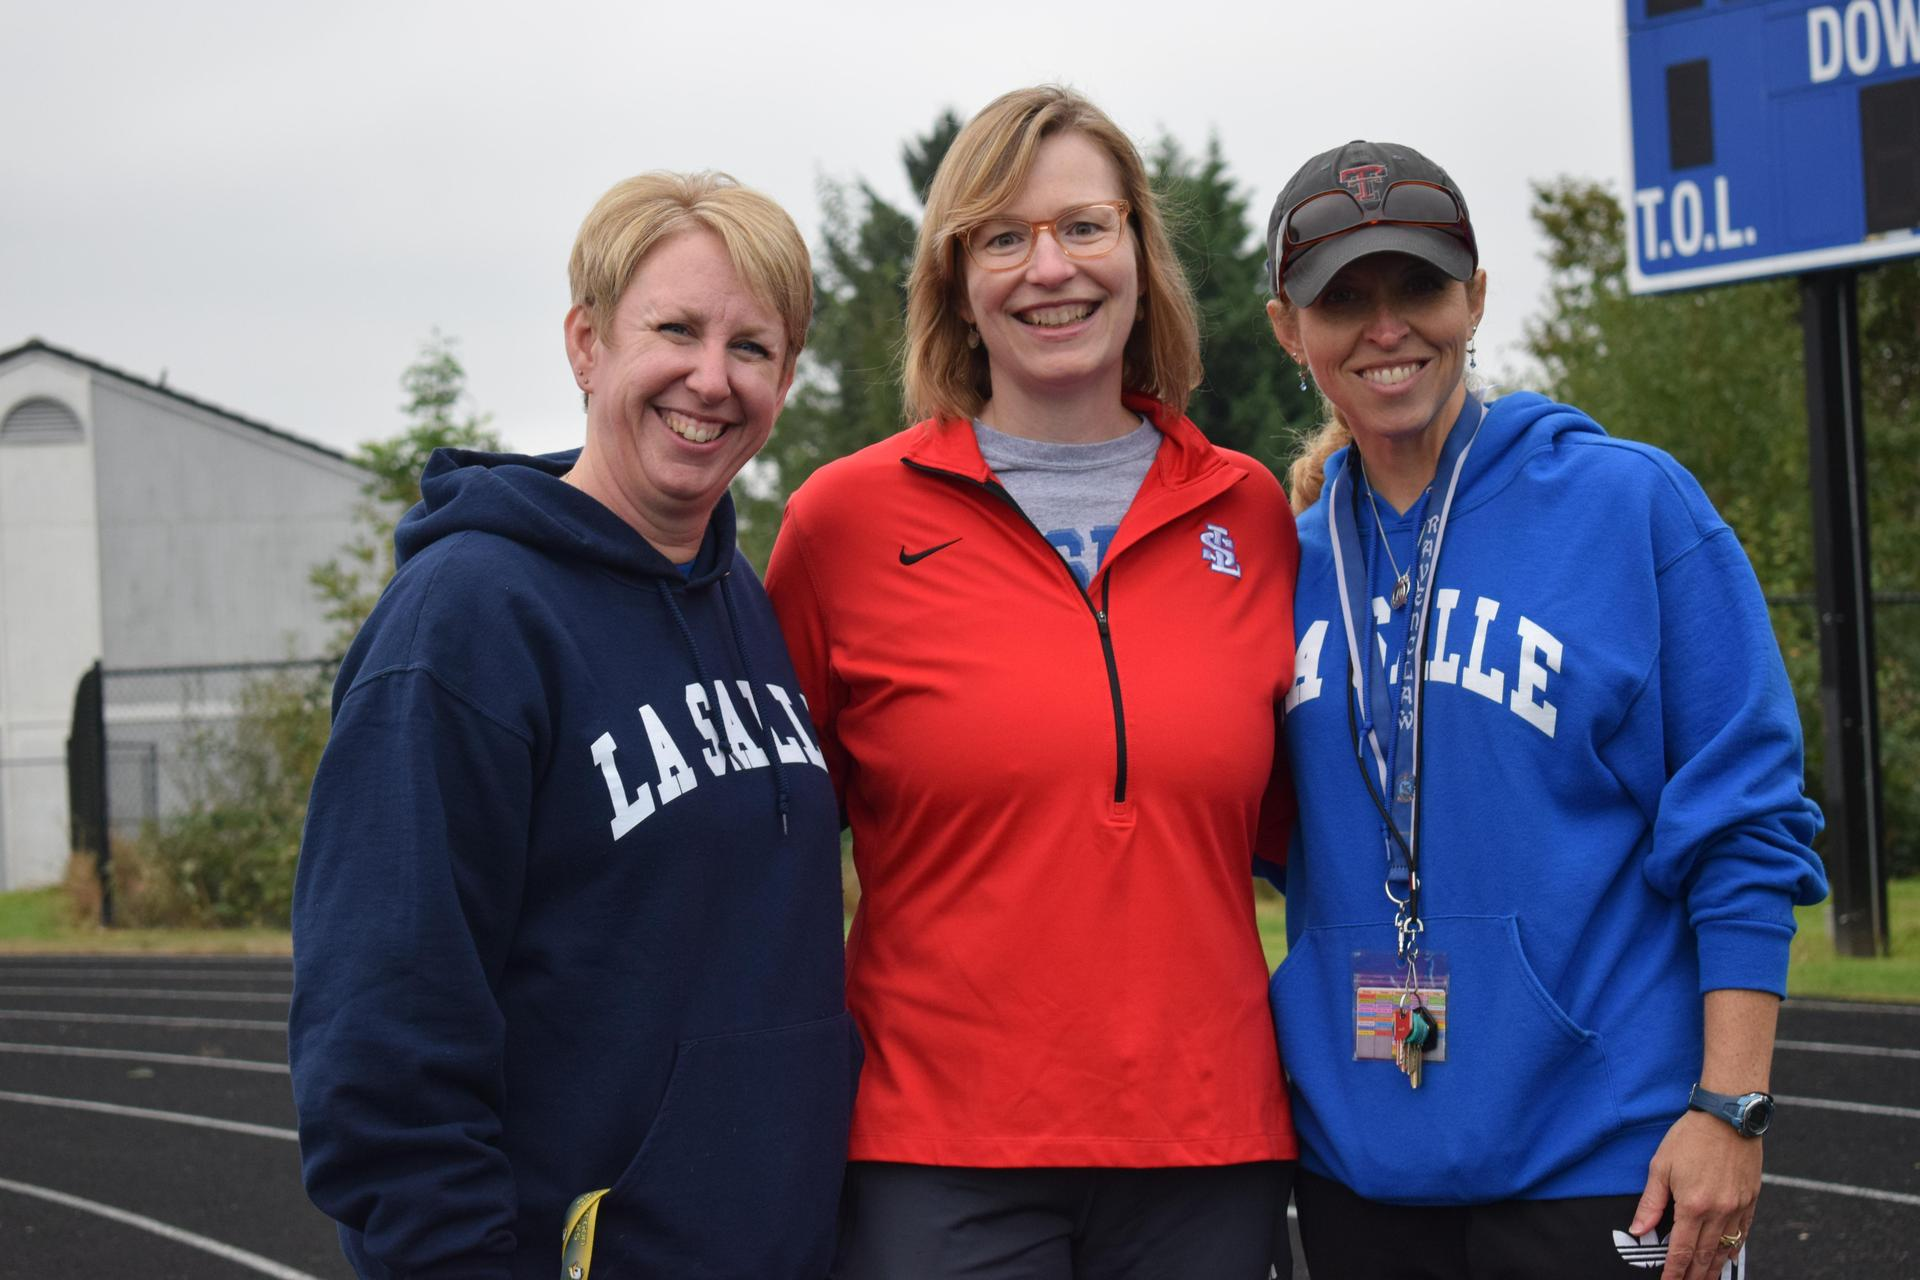 staff members pose during the walk